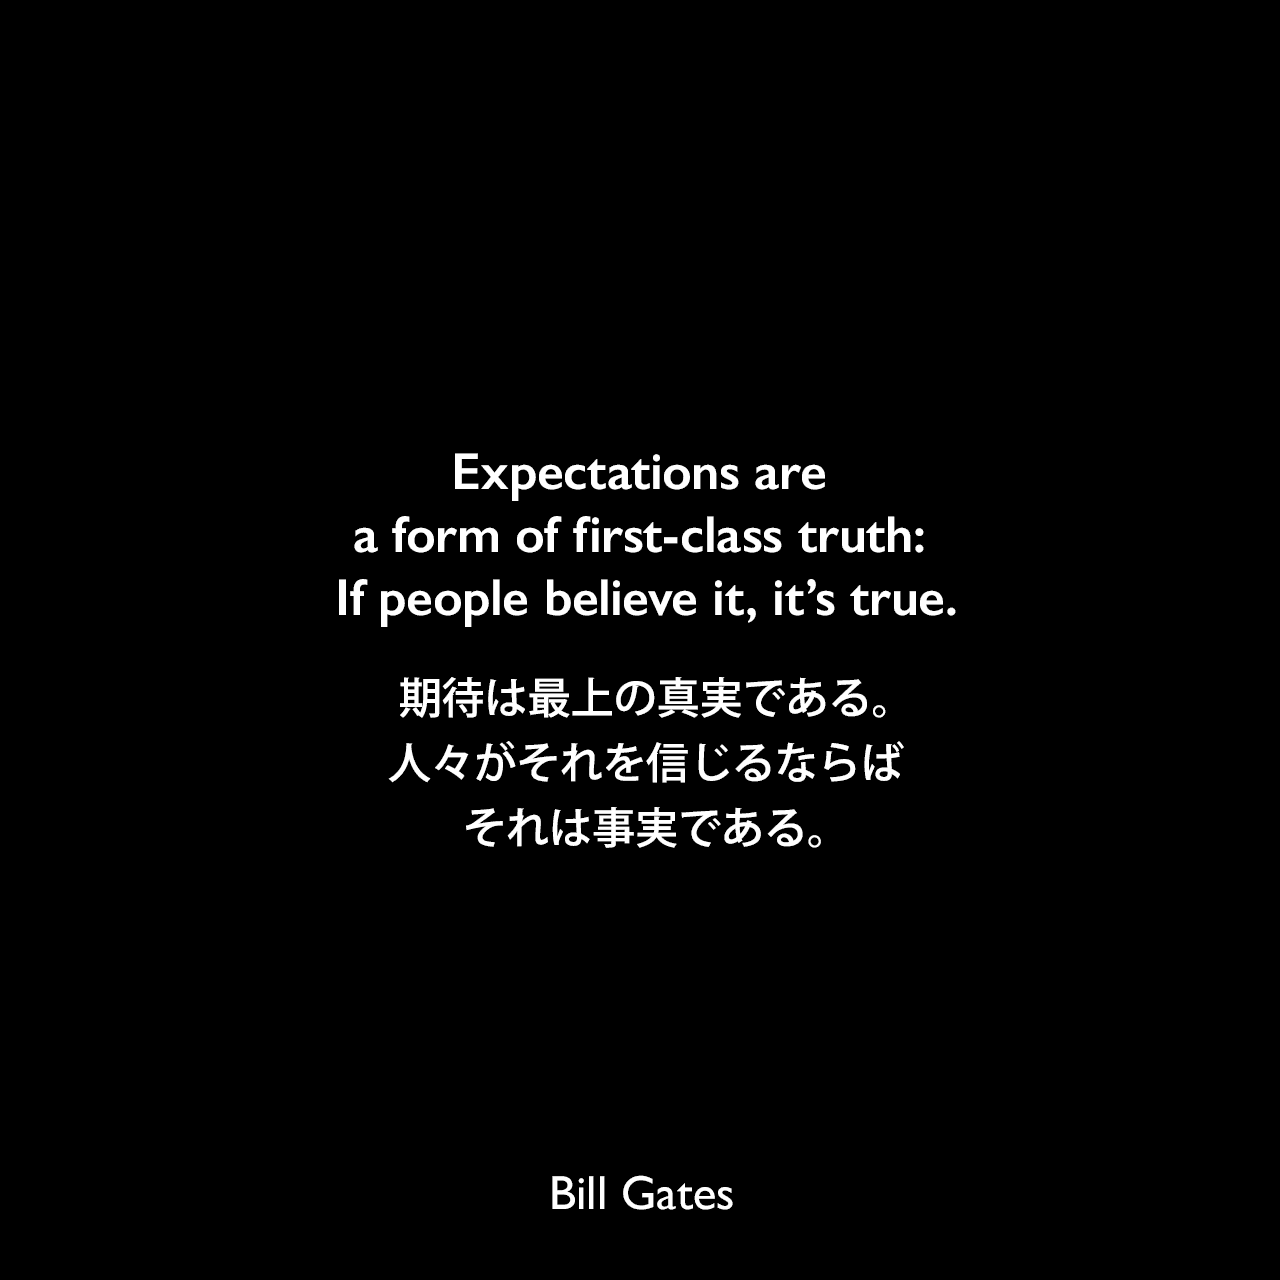 Expectations are a form of first-class truth: If people believe it, it's true.期待は最上の真実である。人々がそれを信じるならば、それは事実である。Bill Gates